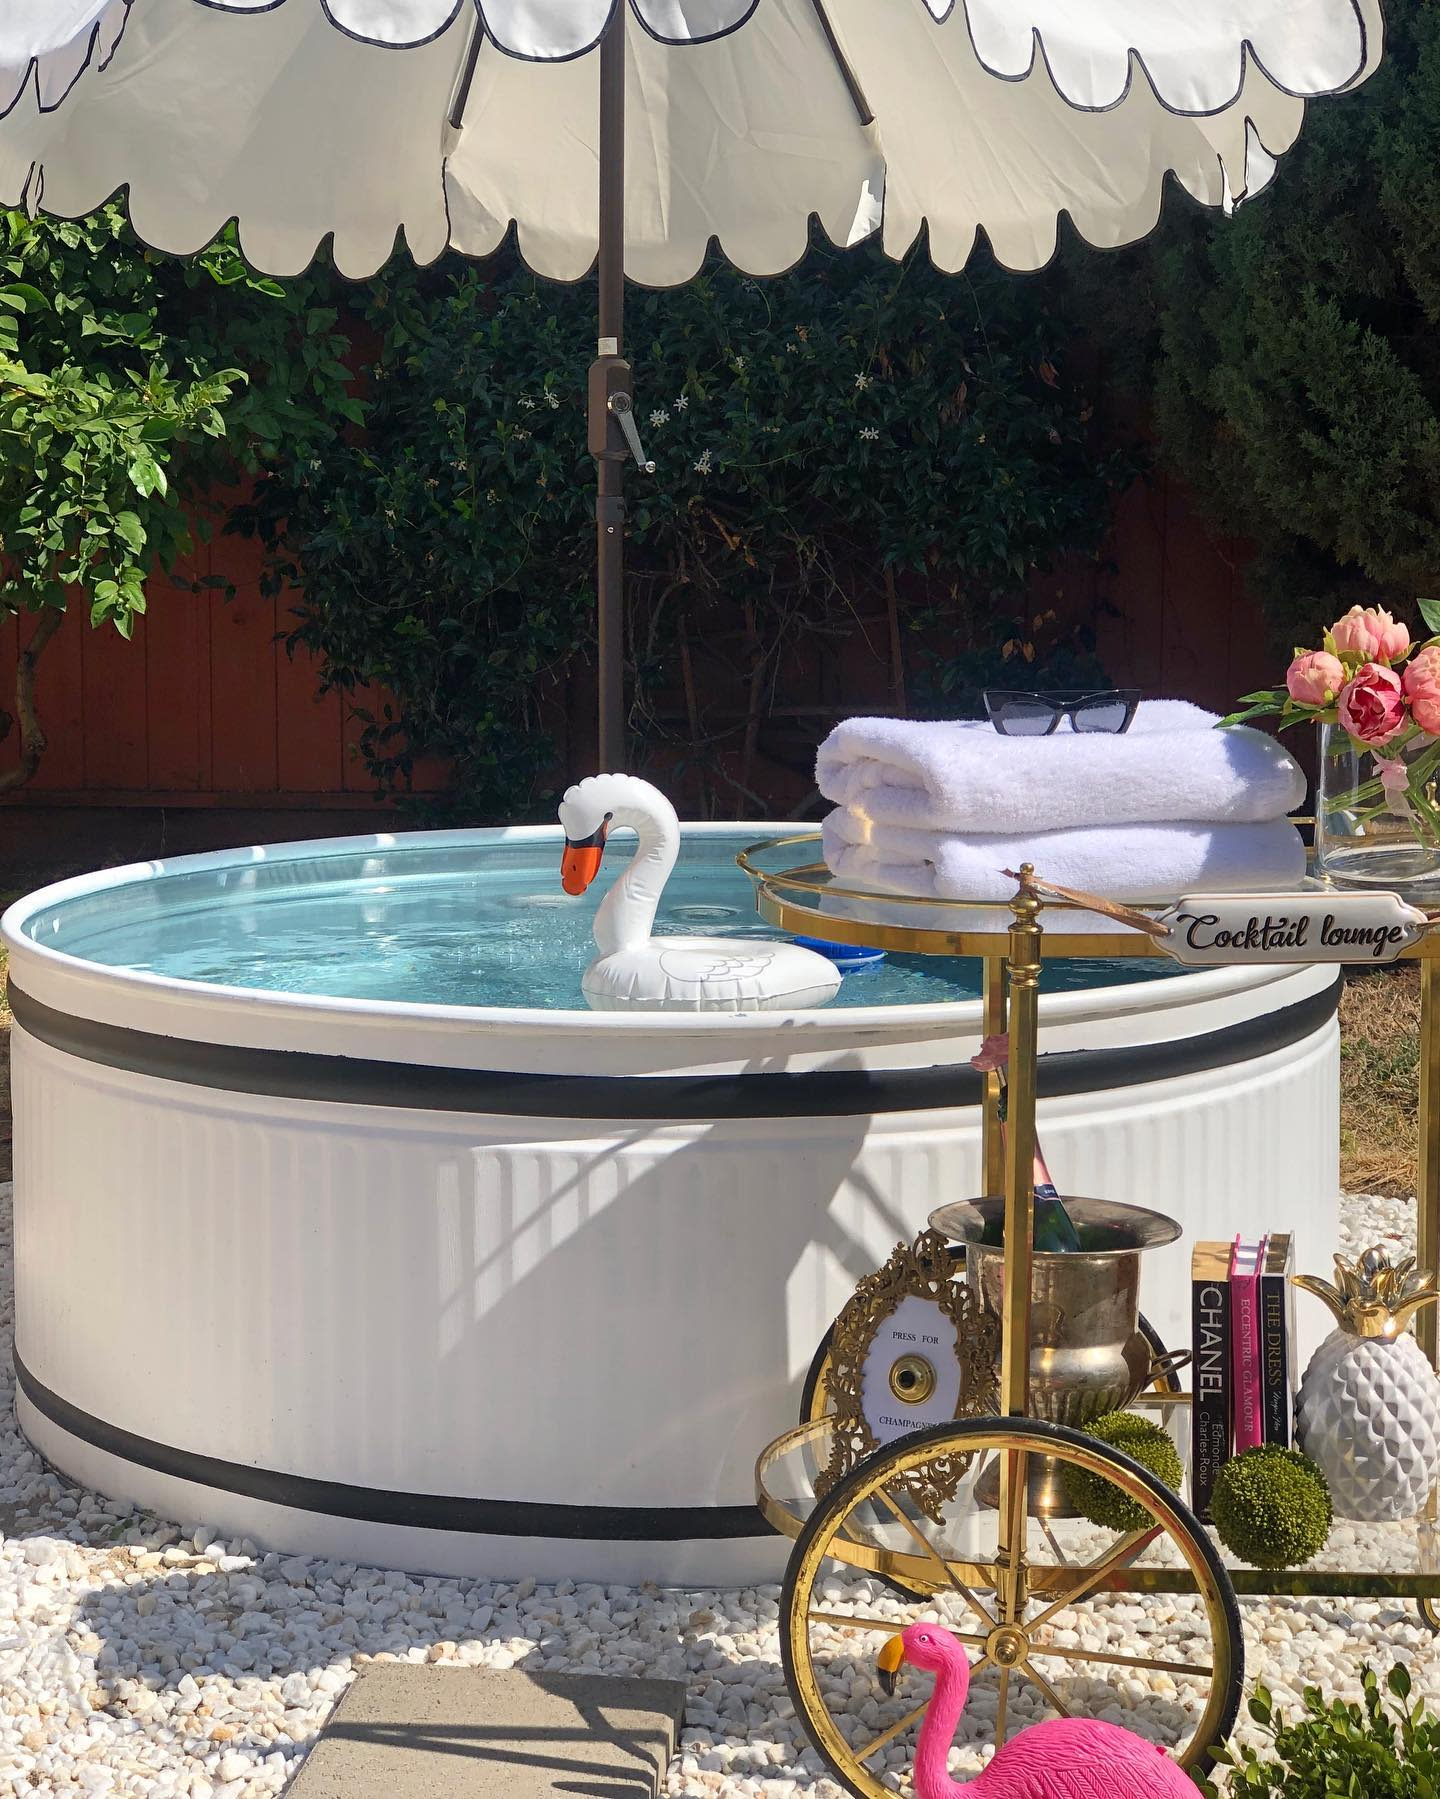 painted-stock-tank-pool-ideas-home-love-glam